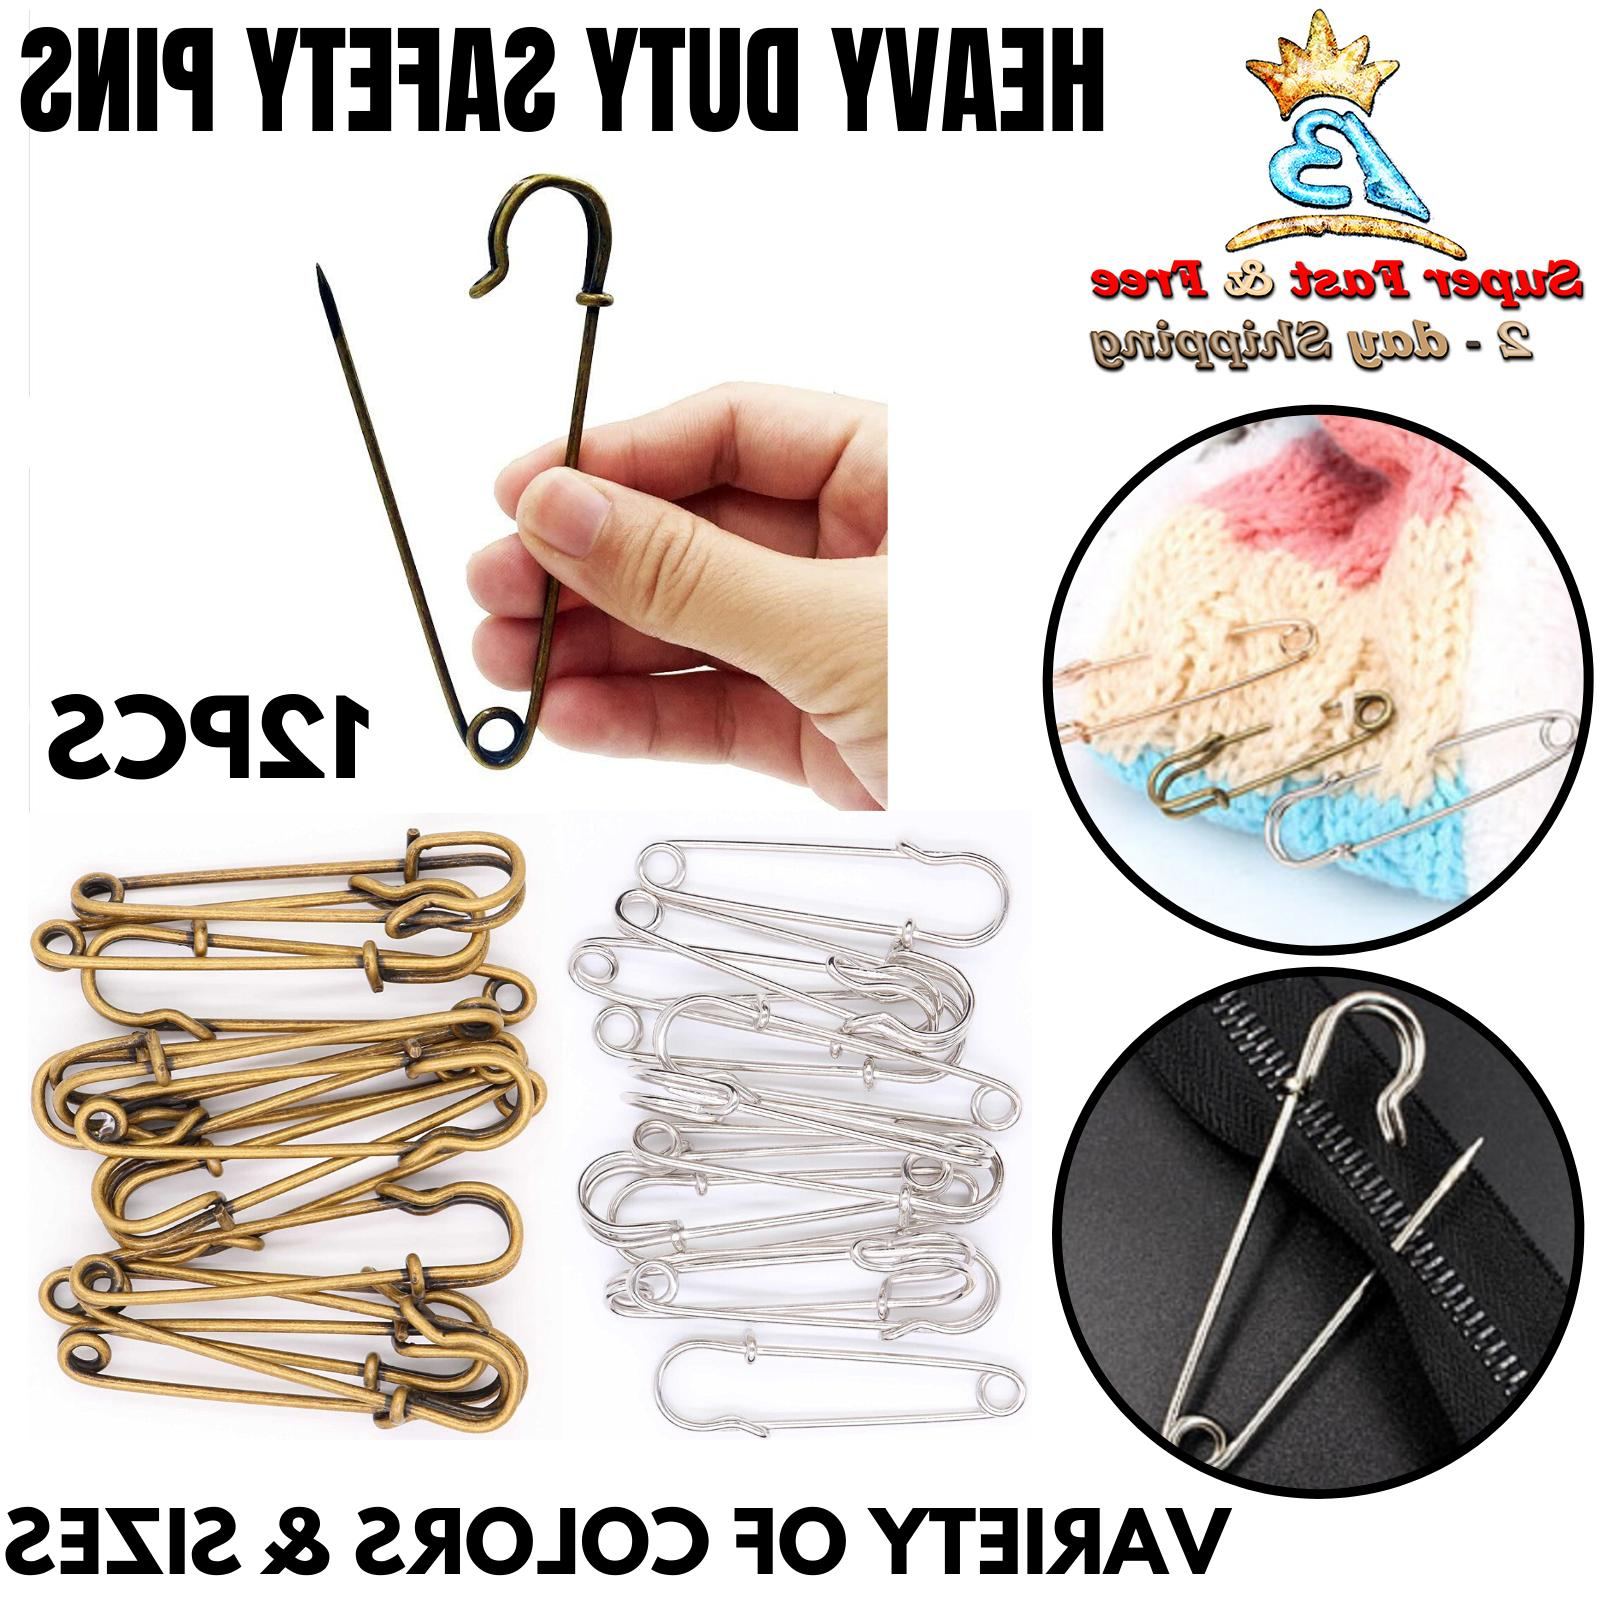 Extra Large Steel Safety Pins For Blankets Clothes Crafts Di